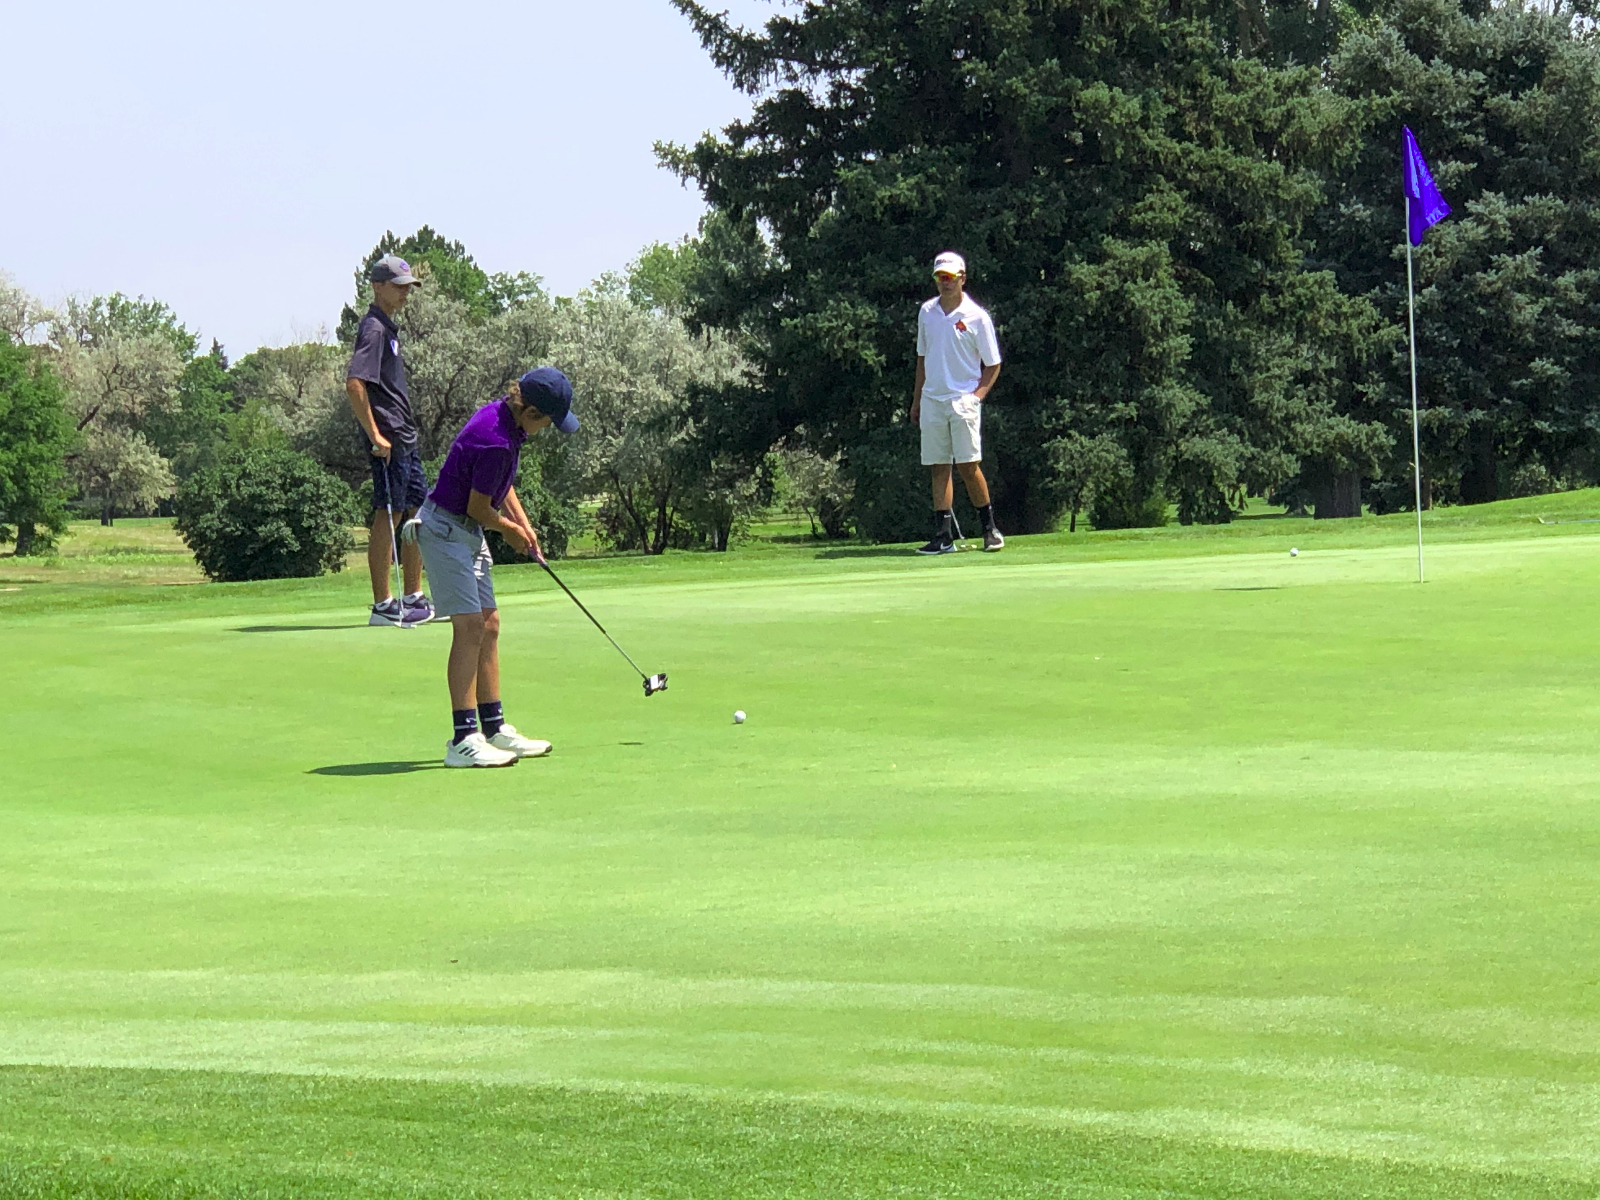 Boys golf: Tigers finish second in first tournament of the season